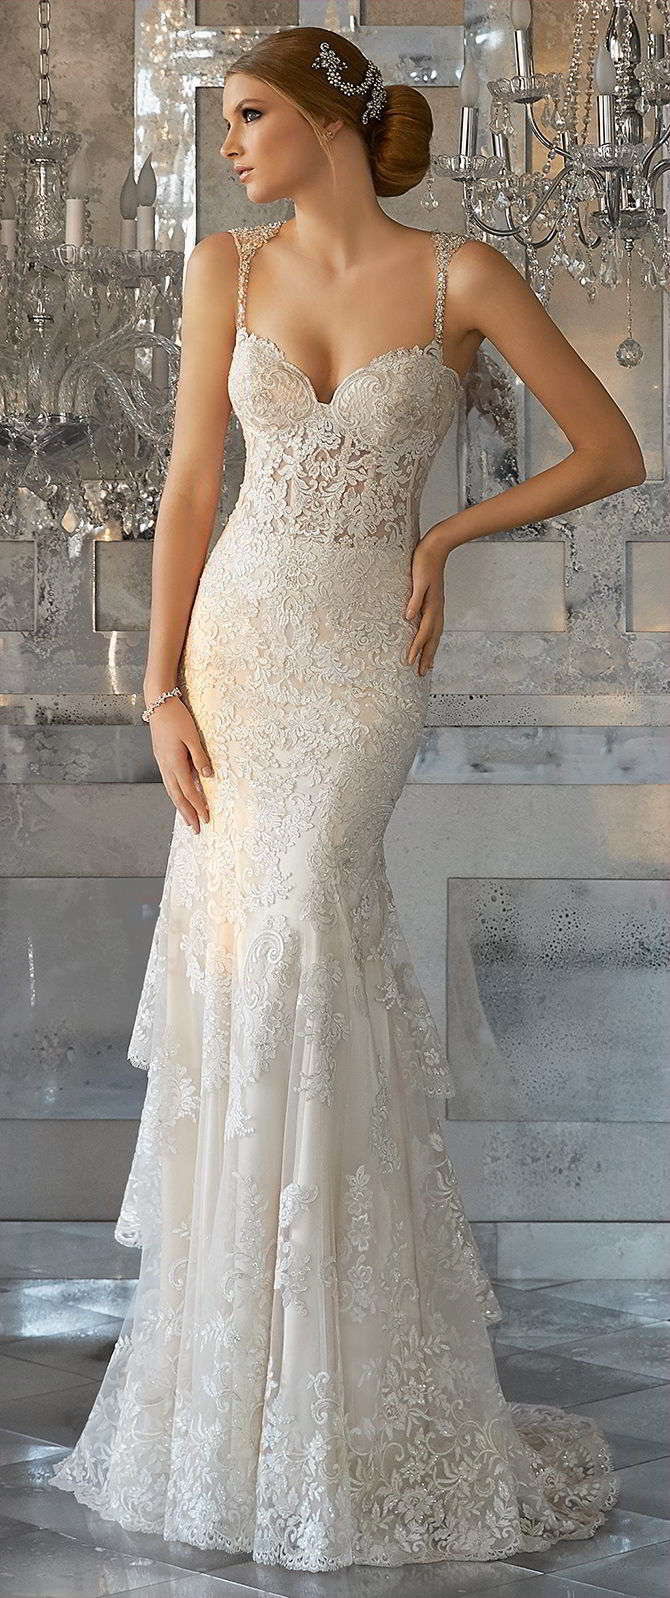 Mori Lee by Madeline Gardner Fall 2017 Slim, Fit and Flare Wedding Dress